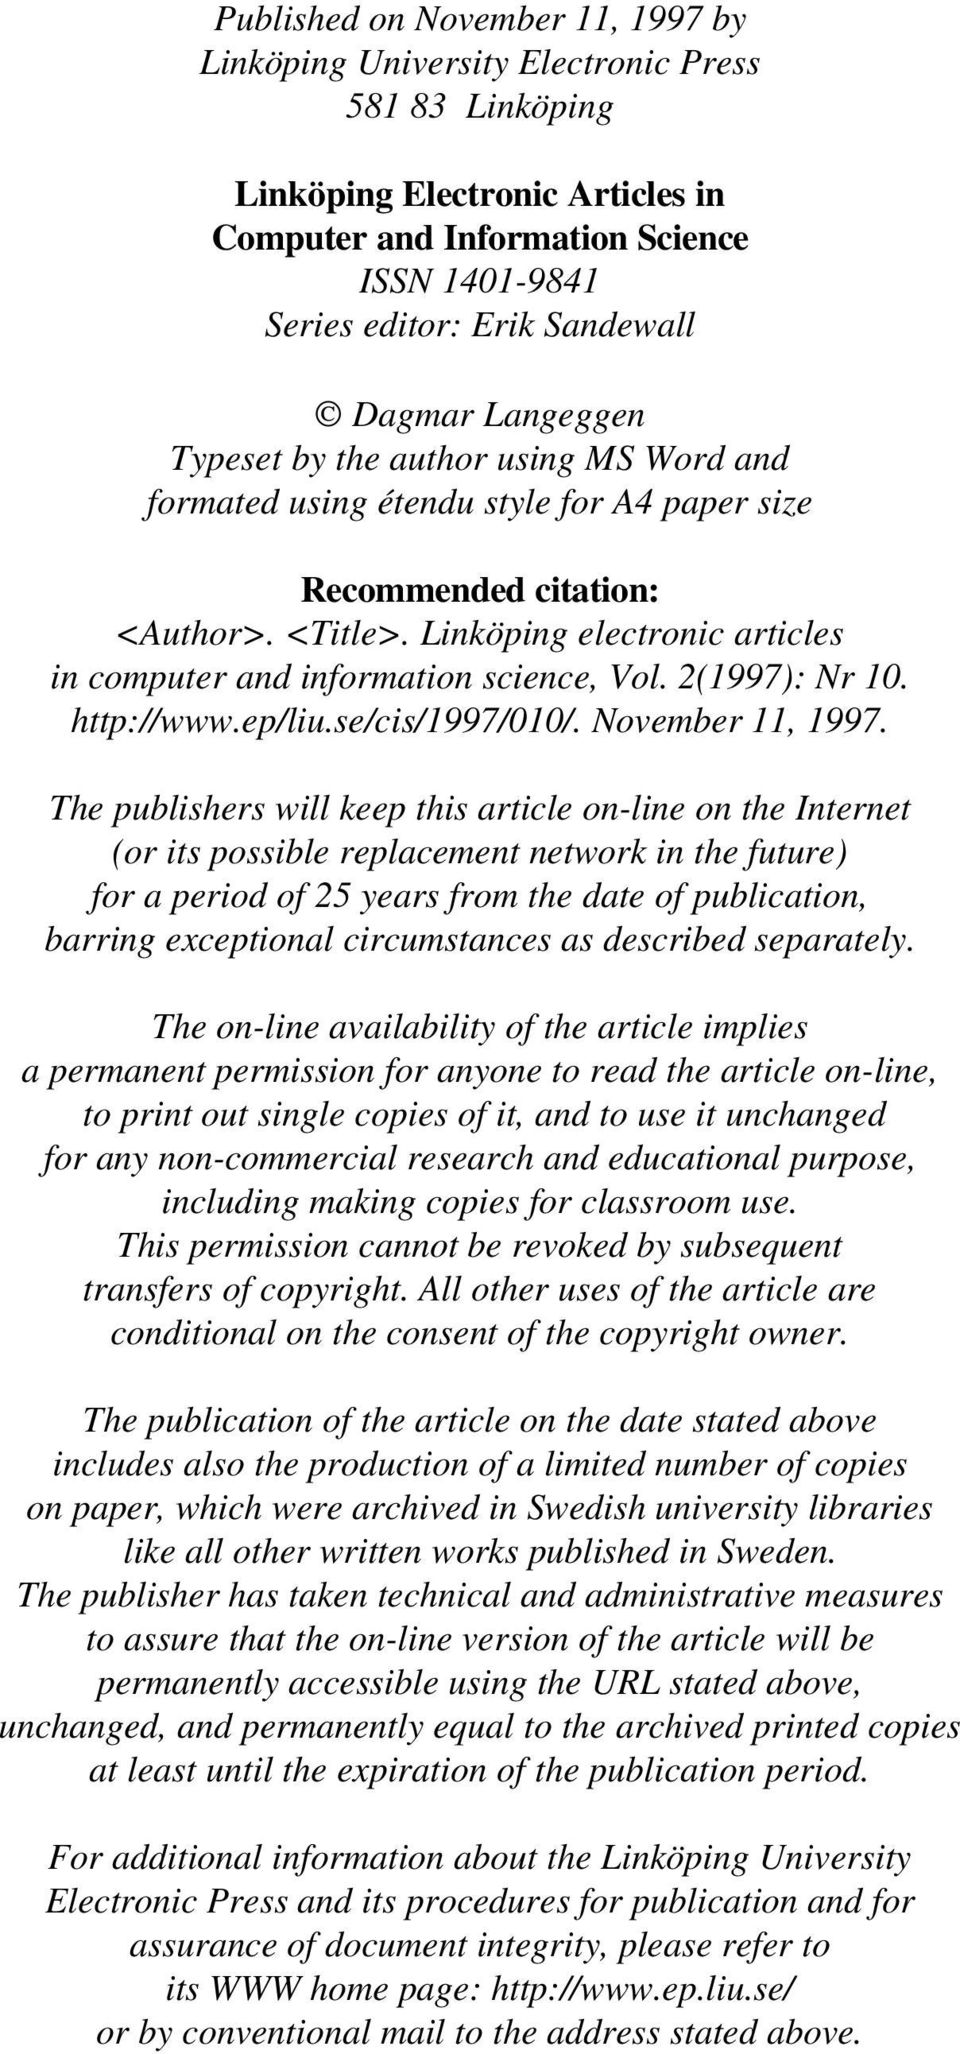 Linköping electronic articles in computer and information science, Vol. 2(1997): Nr 10. http://www.ep/liu.se/cis/1997/010/. November 11, 1997.